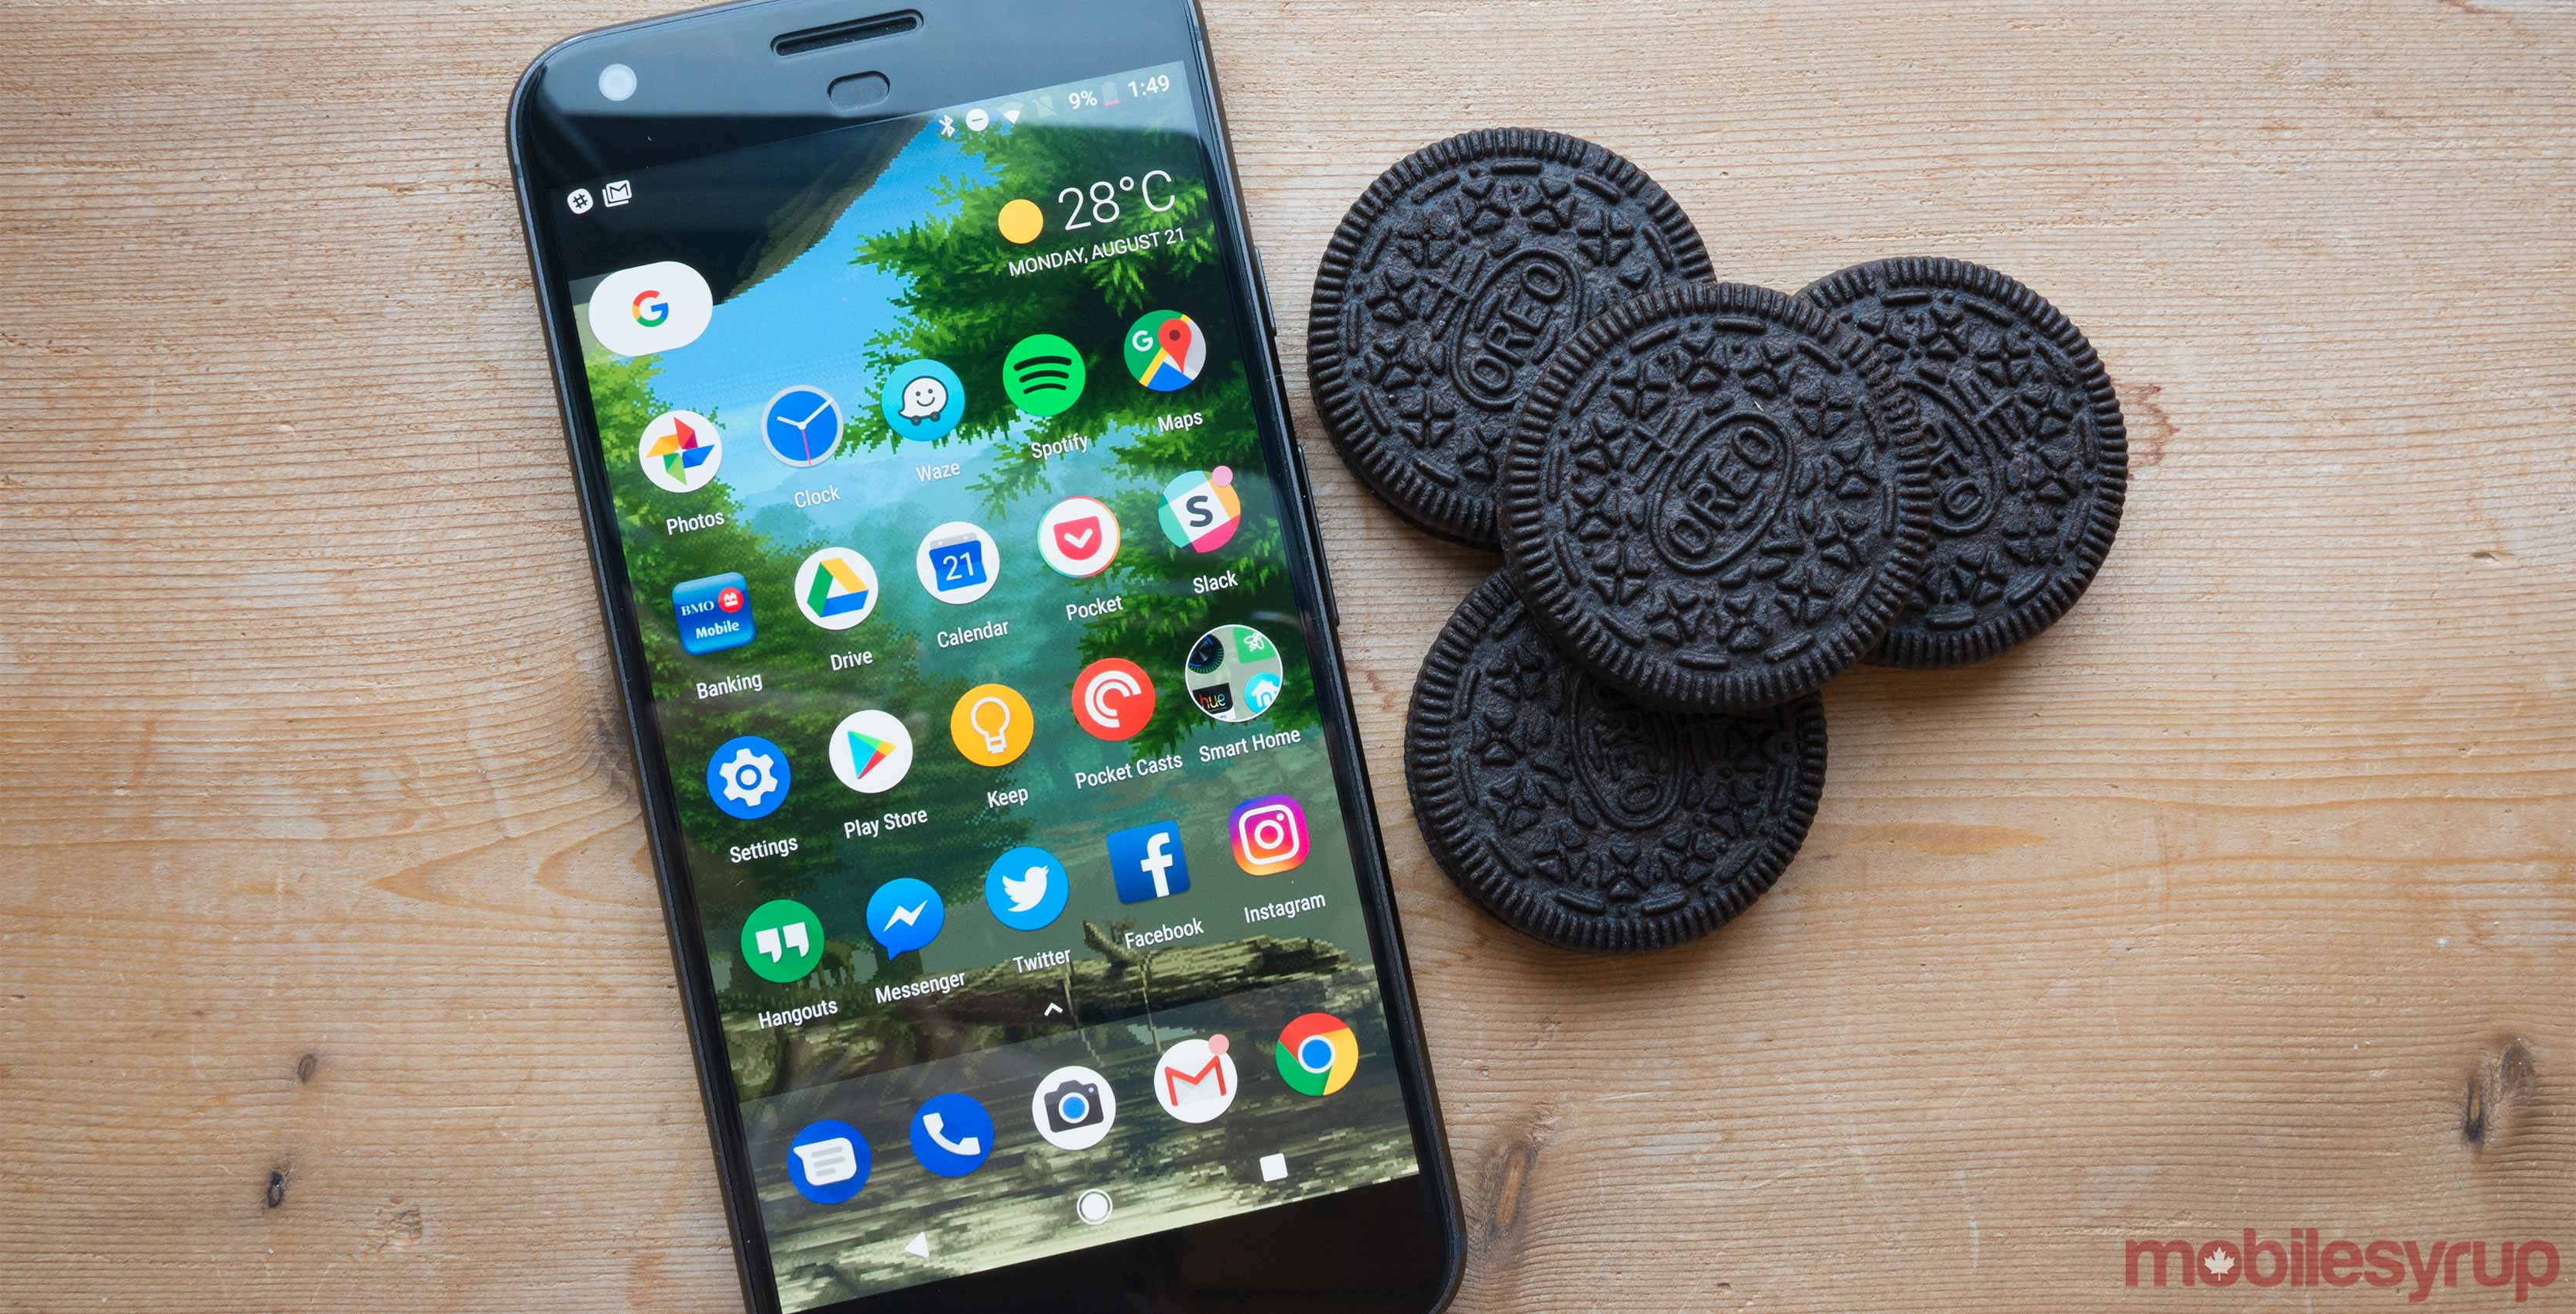 Android Oreo is finally here